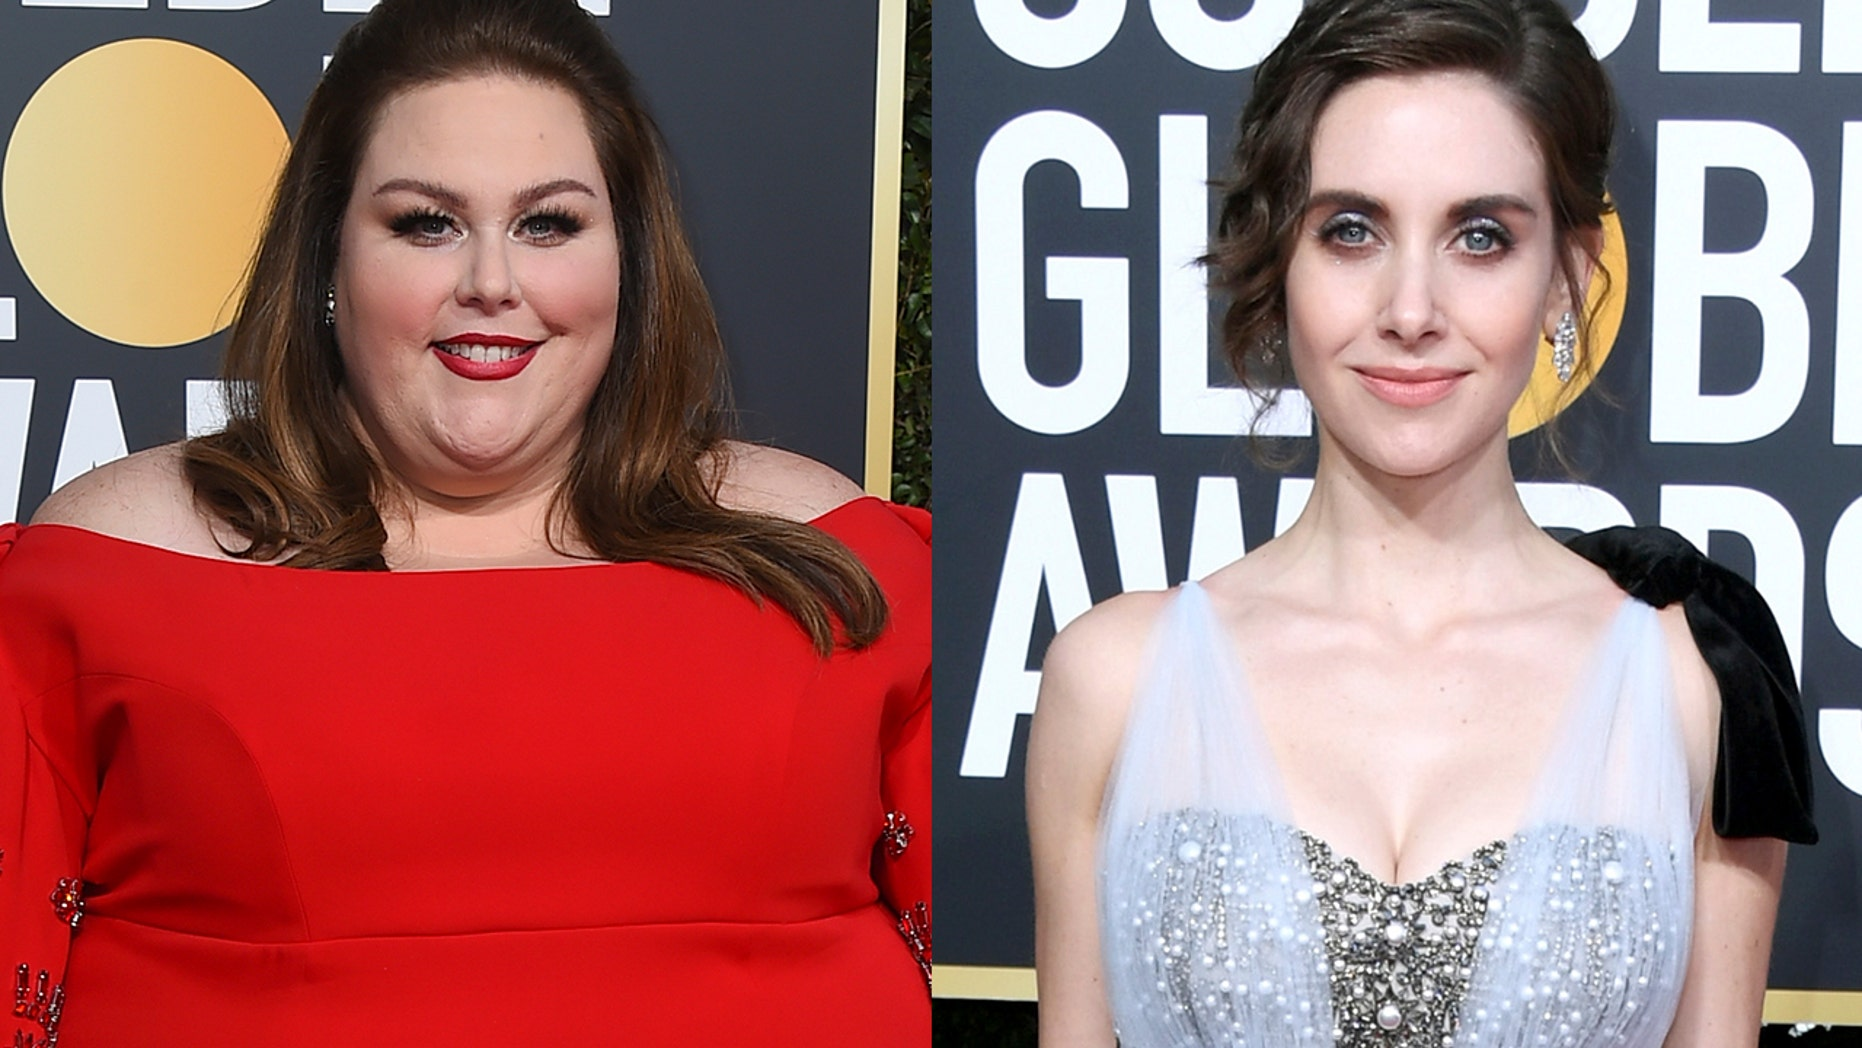 Everything We Know About Chrissy Metz and Alison Brie's Golden Globes Fiasco